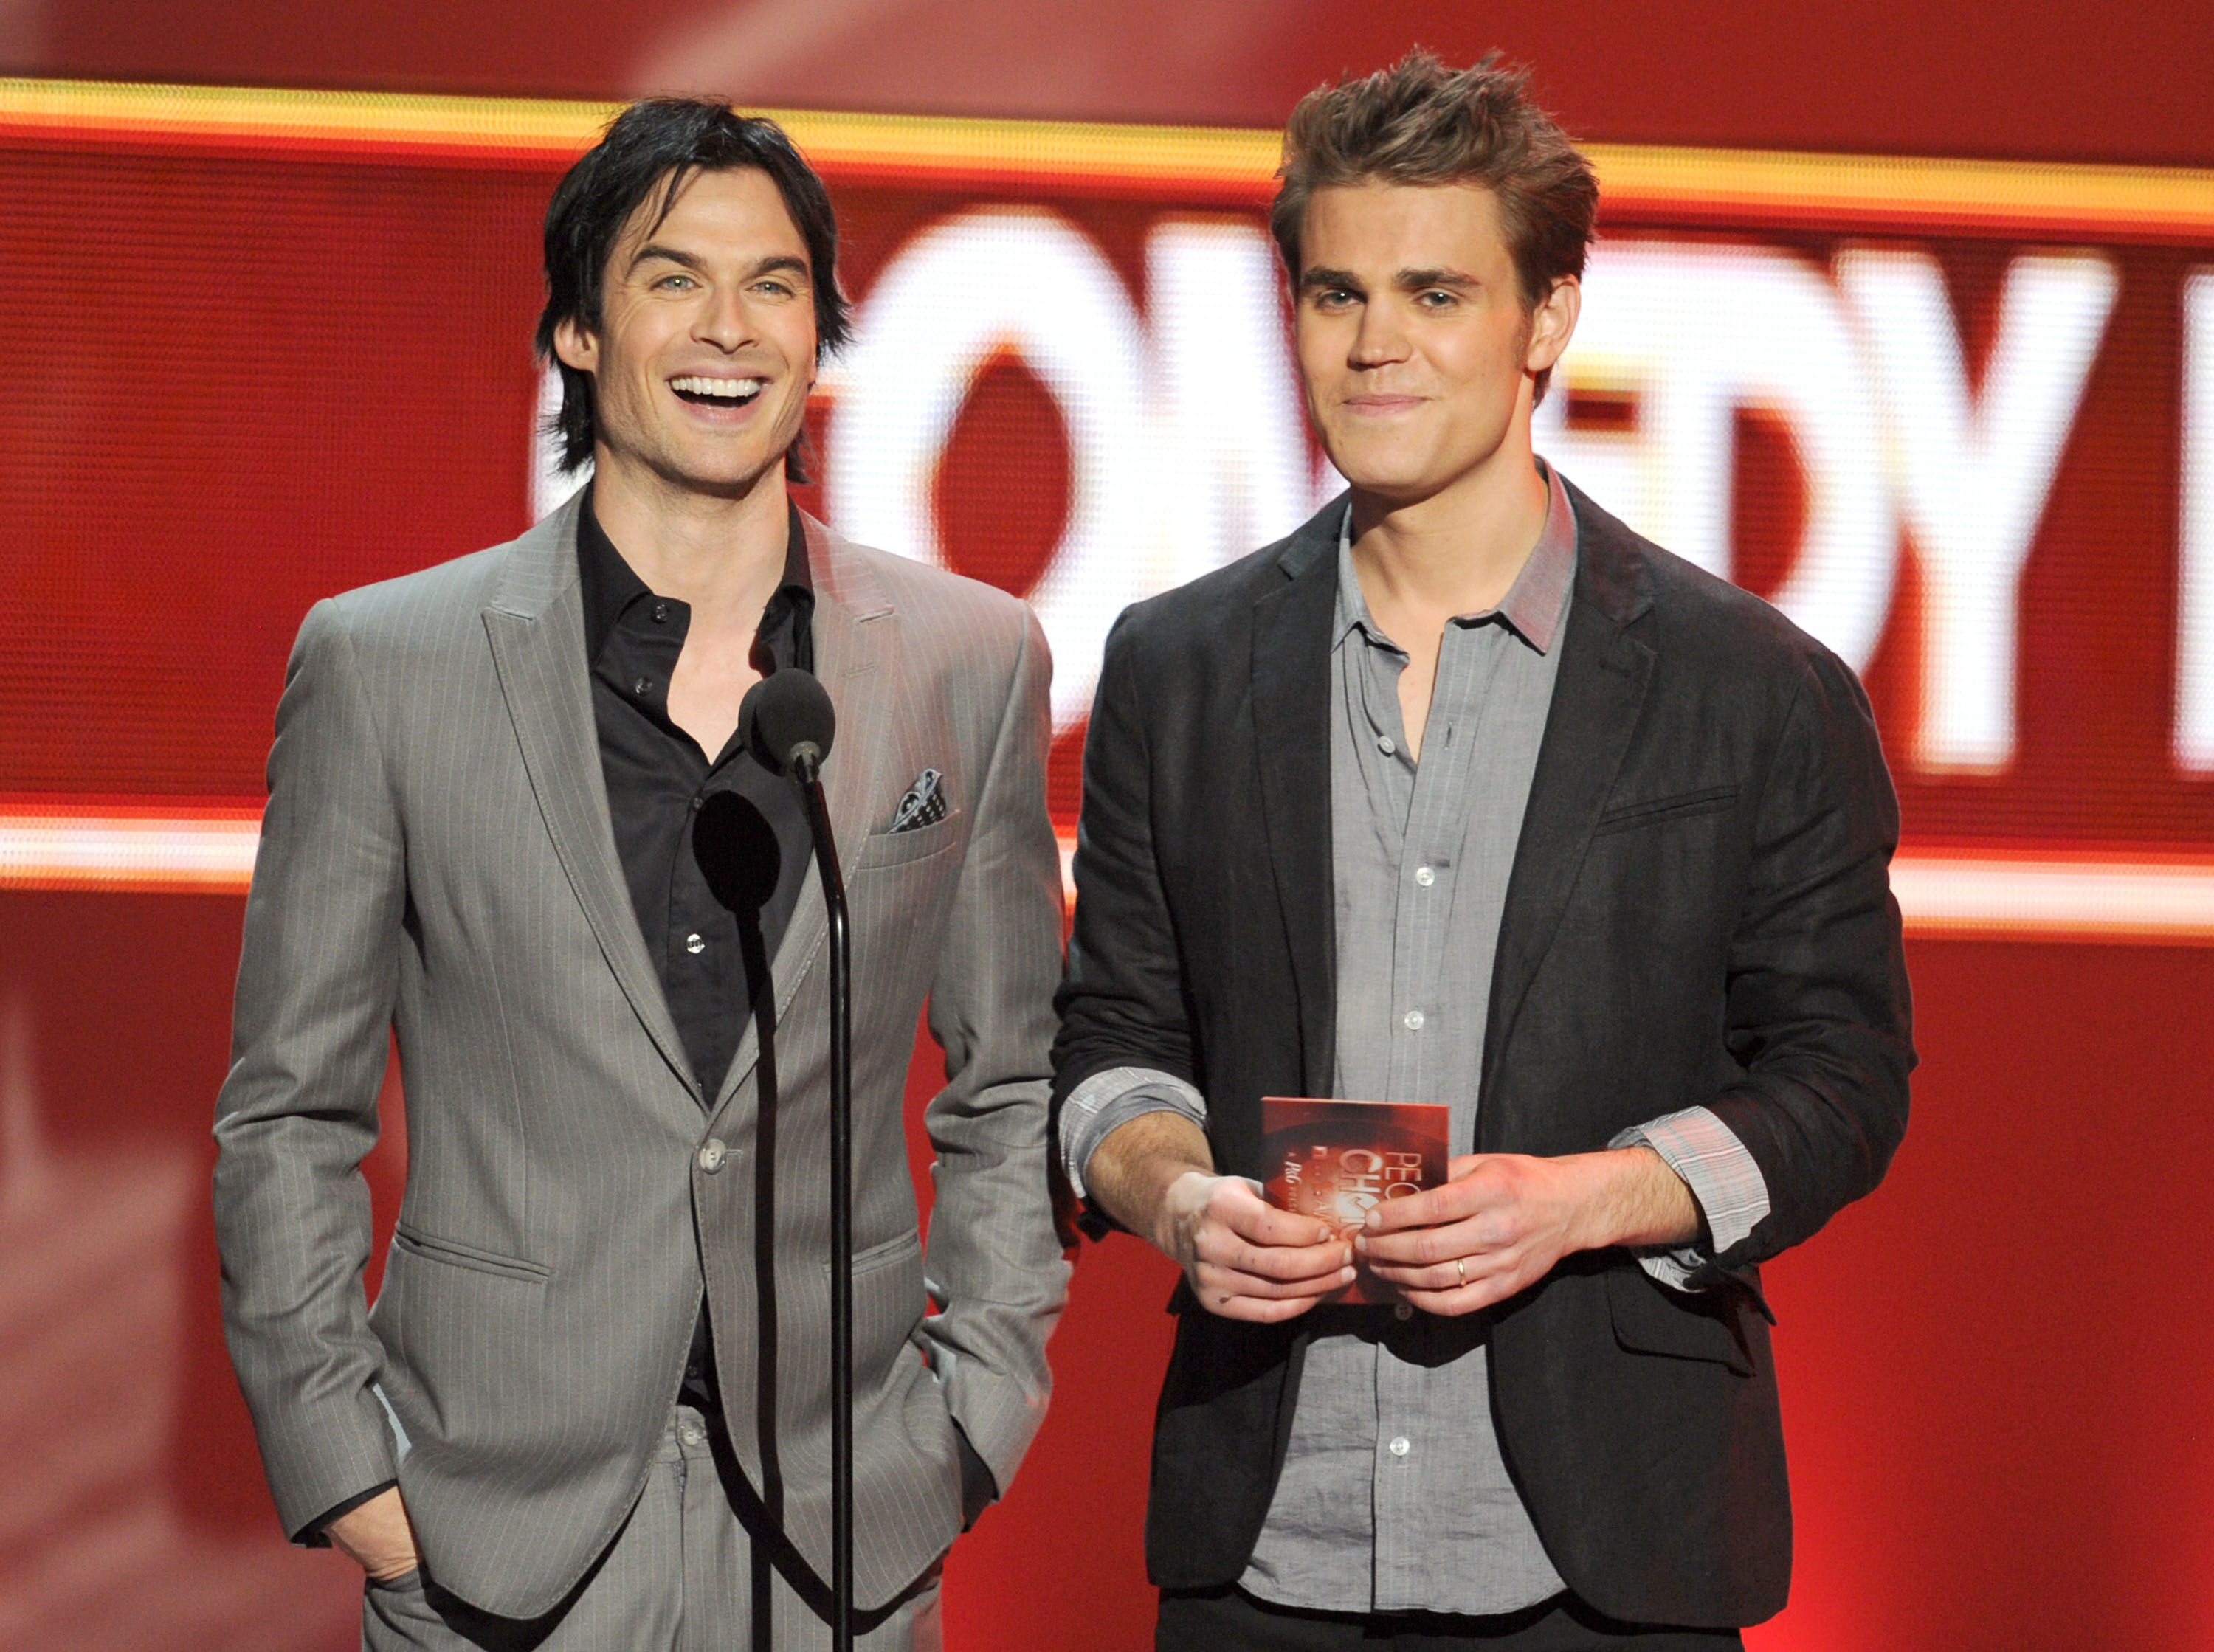 Ian Somerhalder and Paul Wesley